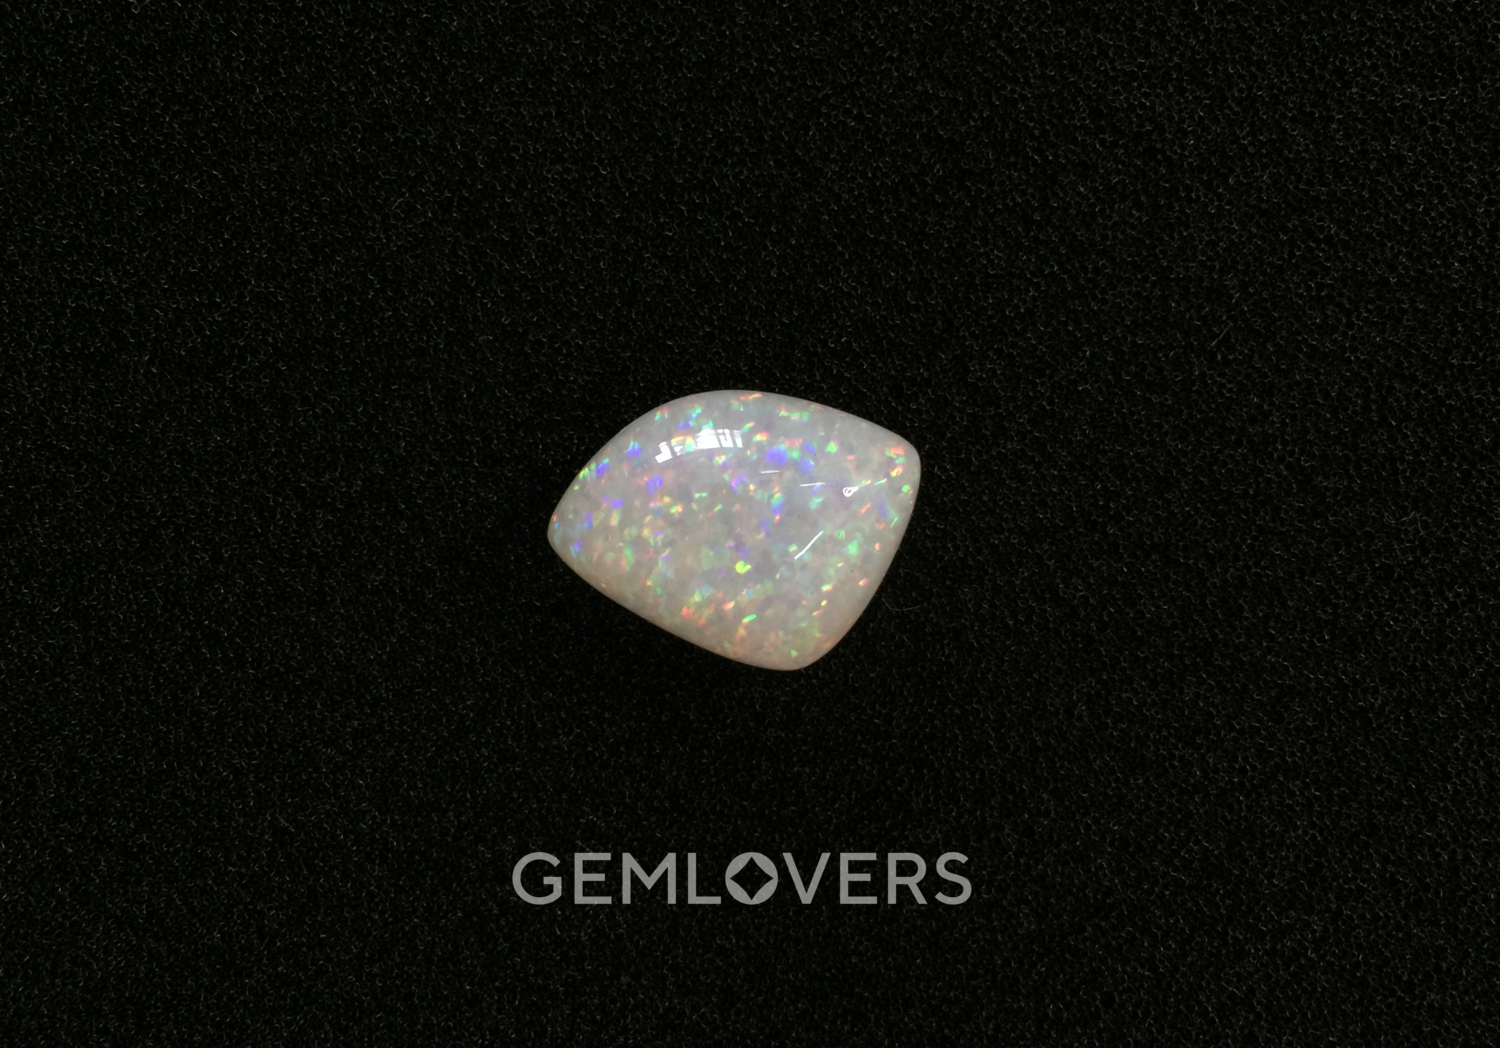 White noble opal from Ethiopia